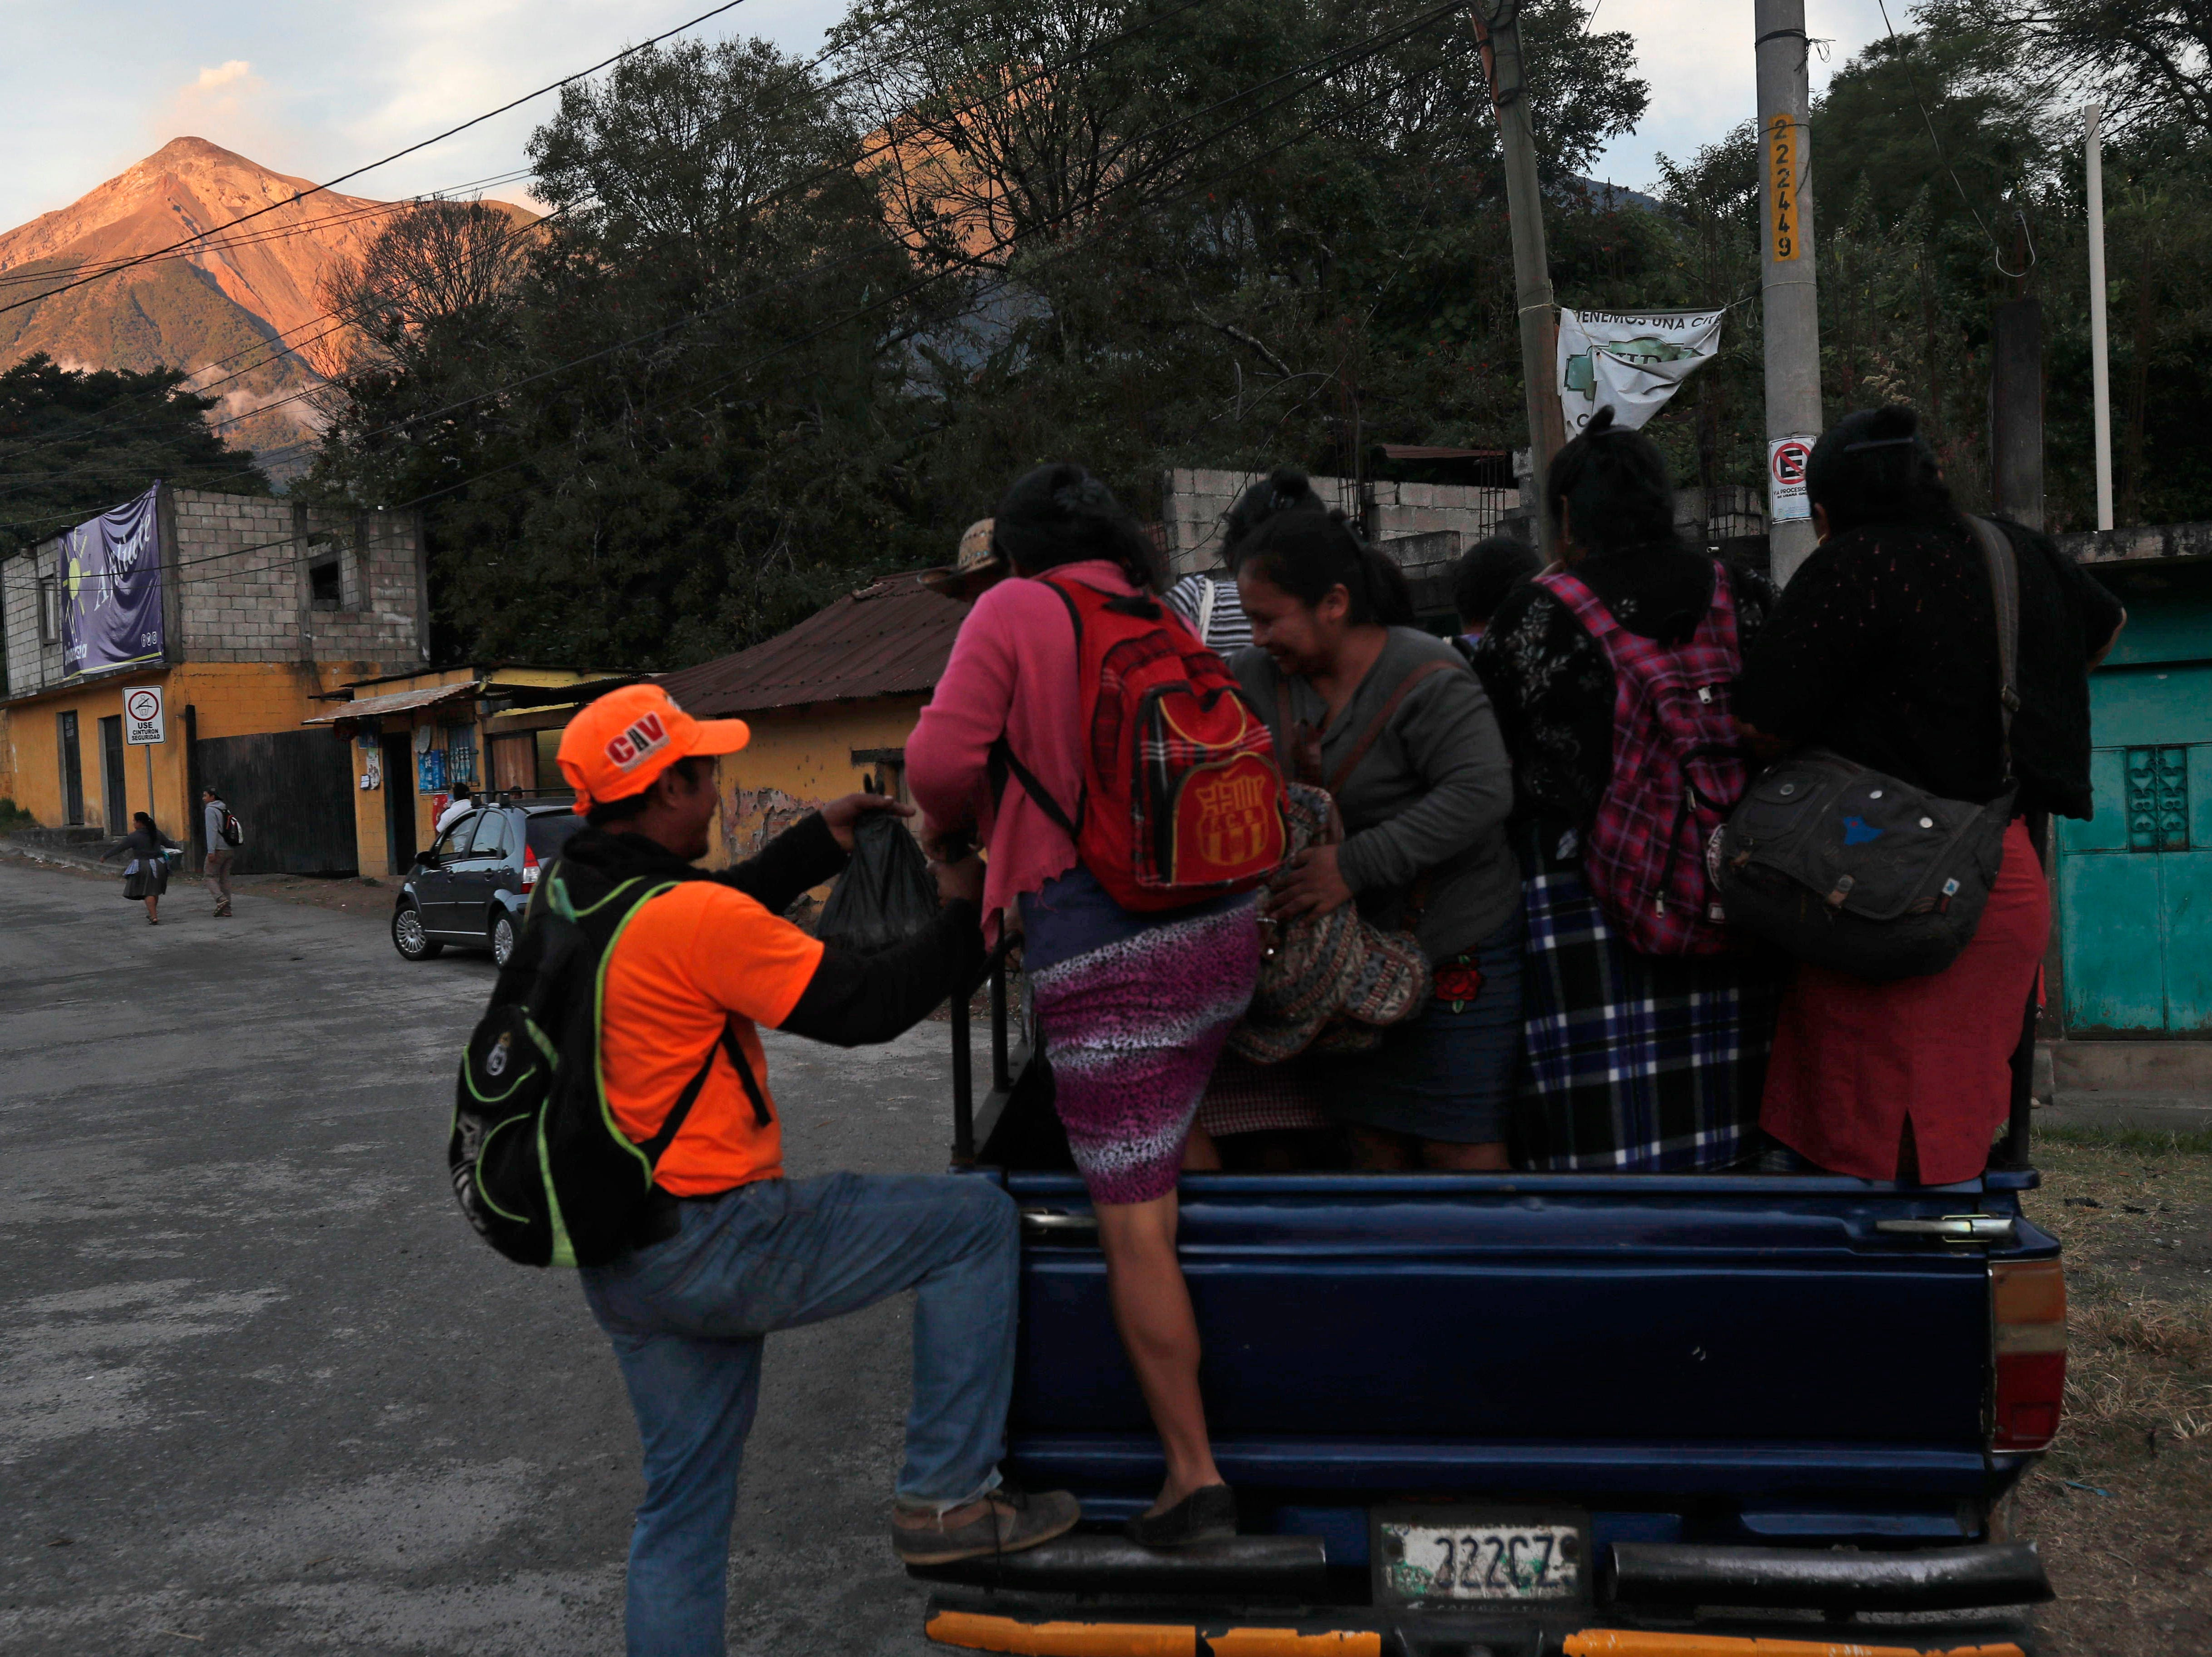 Residents get in a truck as they leave their homes to go to work in coffee fields, backdropped by the Volcan de Fuego, or Volcano of Fire, in San Juan Alotenango, Guatemala, Tuesday, Nov. 20, 2018. The volcanology institute reported that the eruption of the volcano ended on Monday evening, as families who heeded the call of disaster coordination authorities to evacuate 10 communities, started returning home.